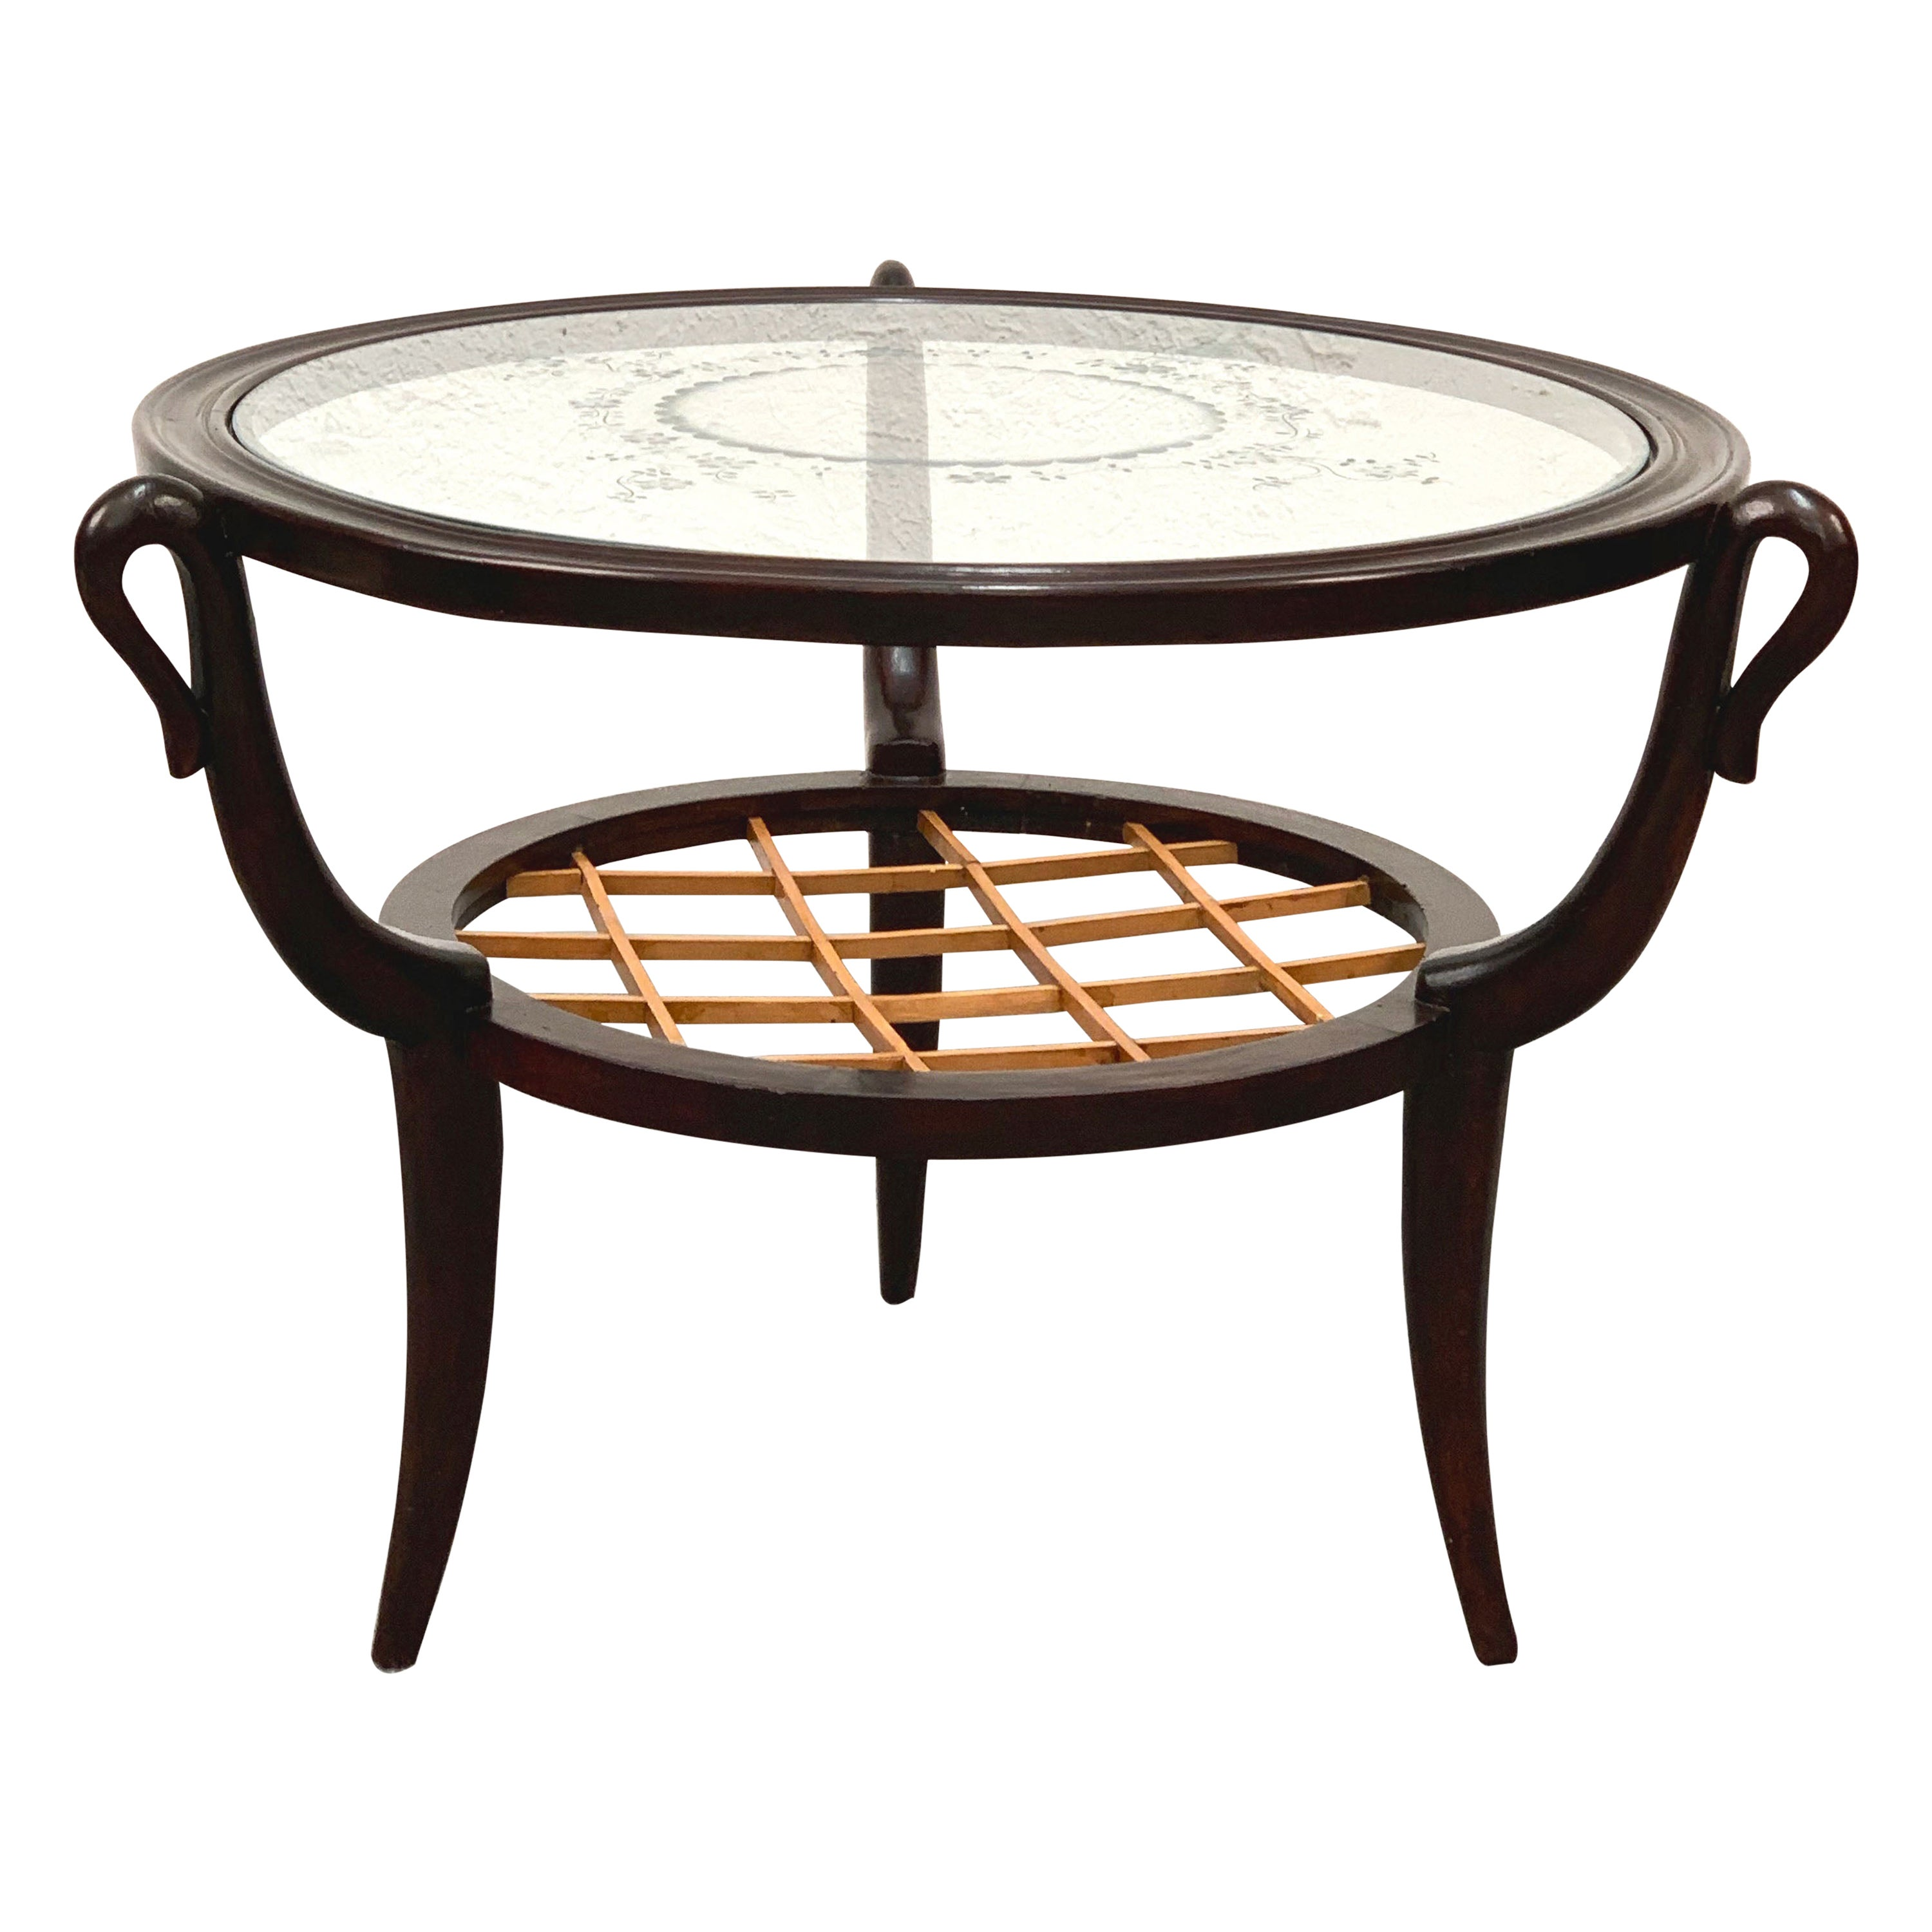 Gio Ponti Midcentury Two-level Round Wood and Glass Italian Coffee Table, 1950s